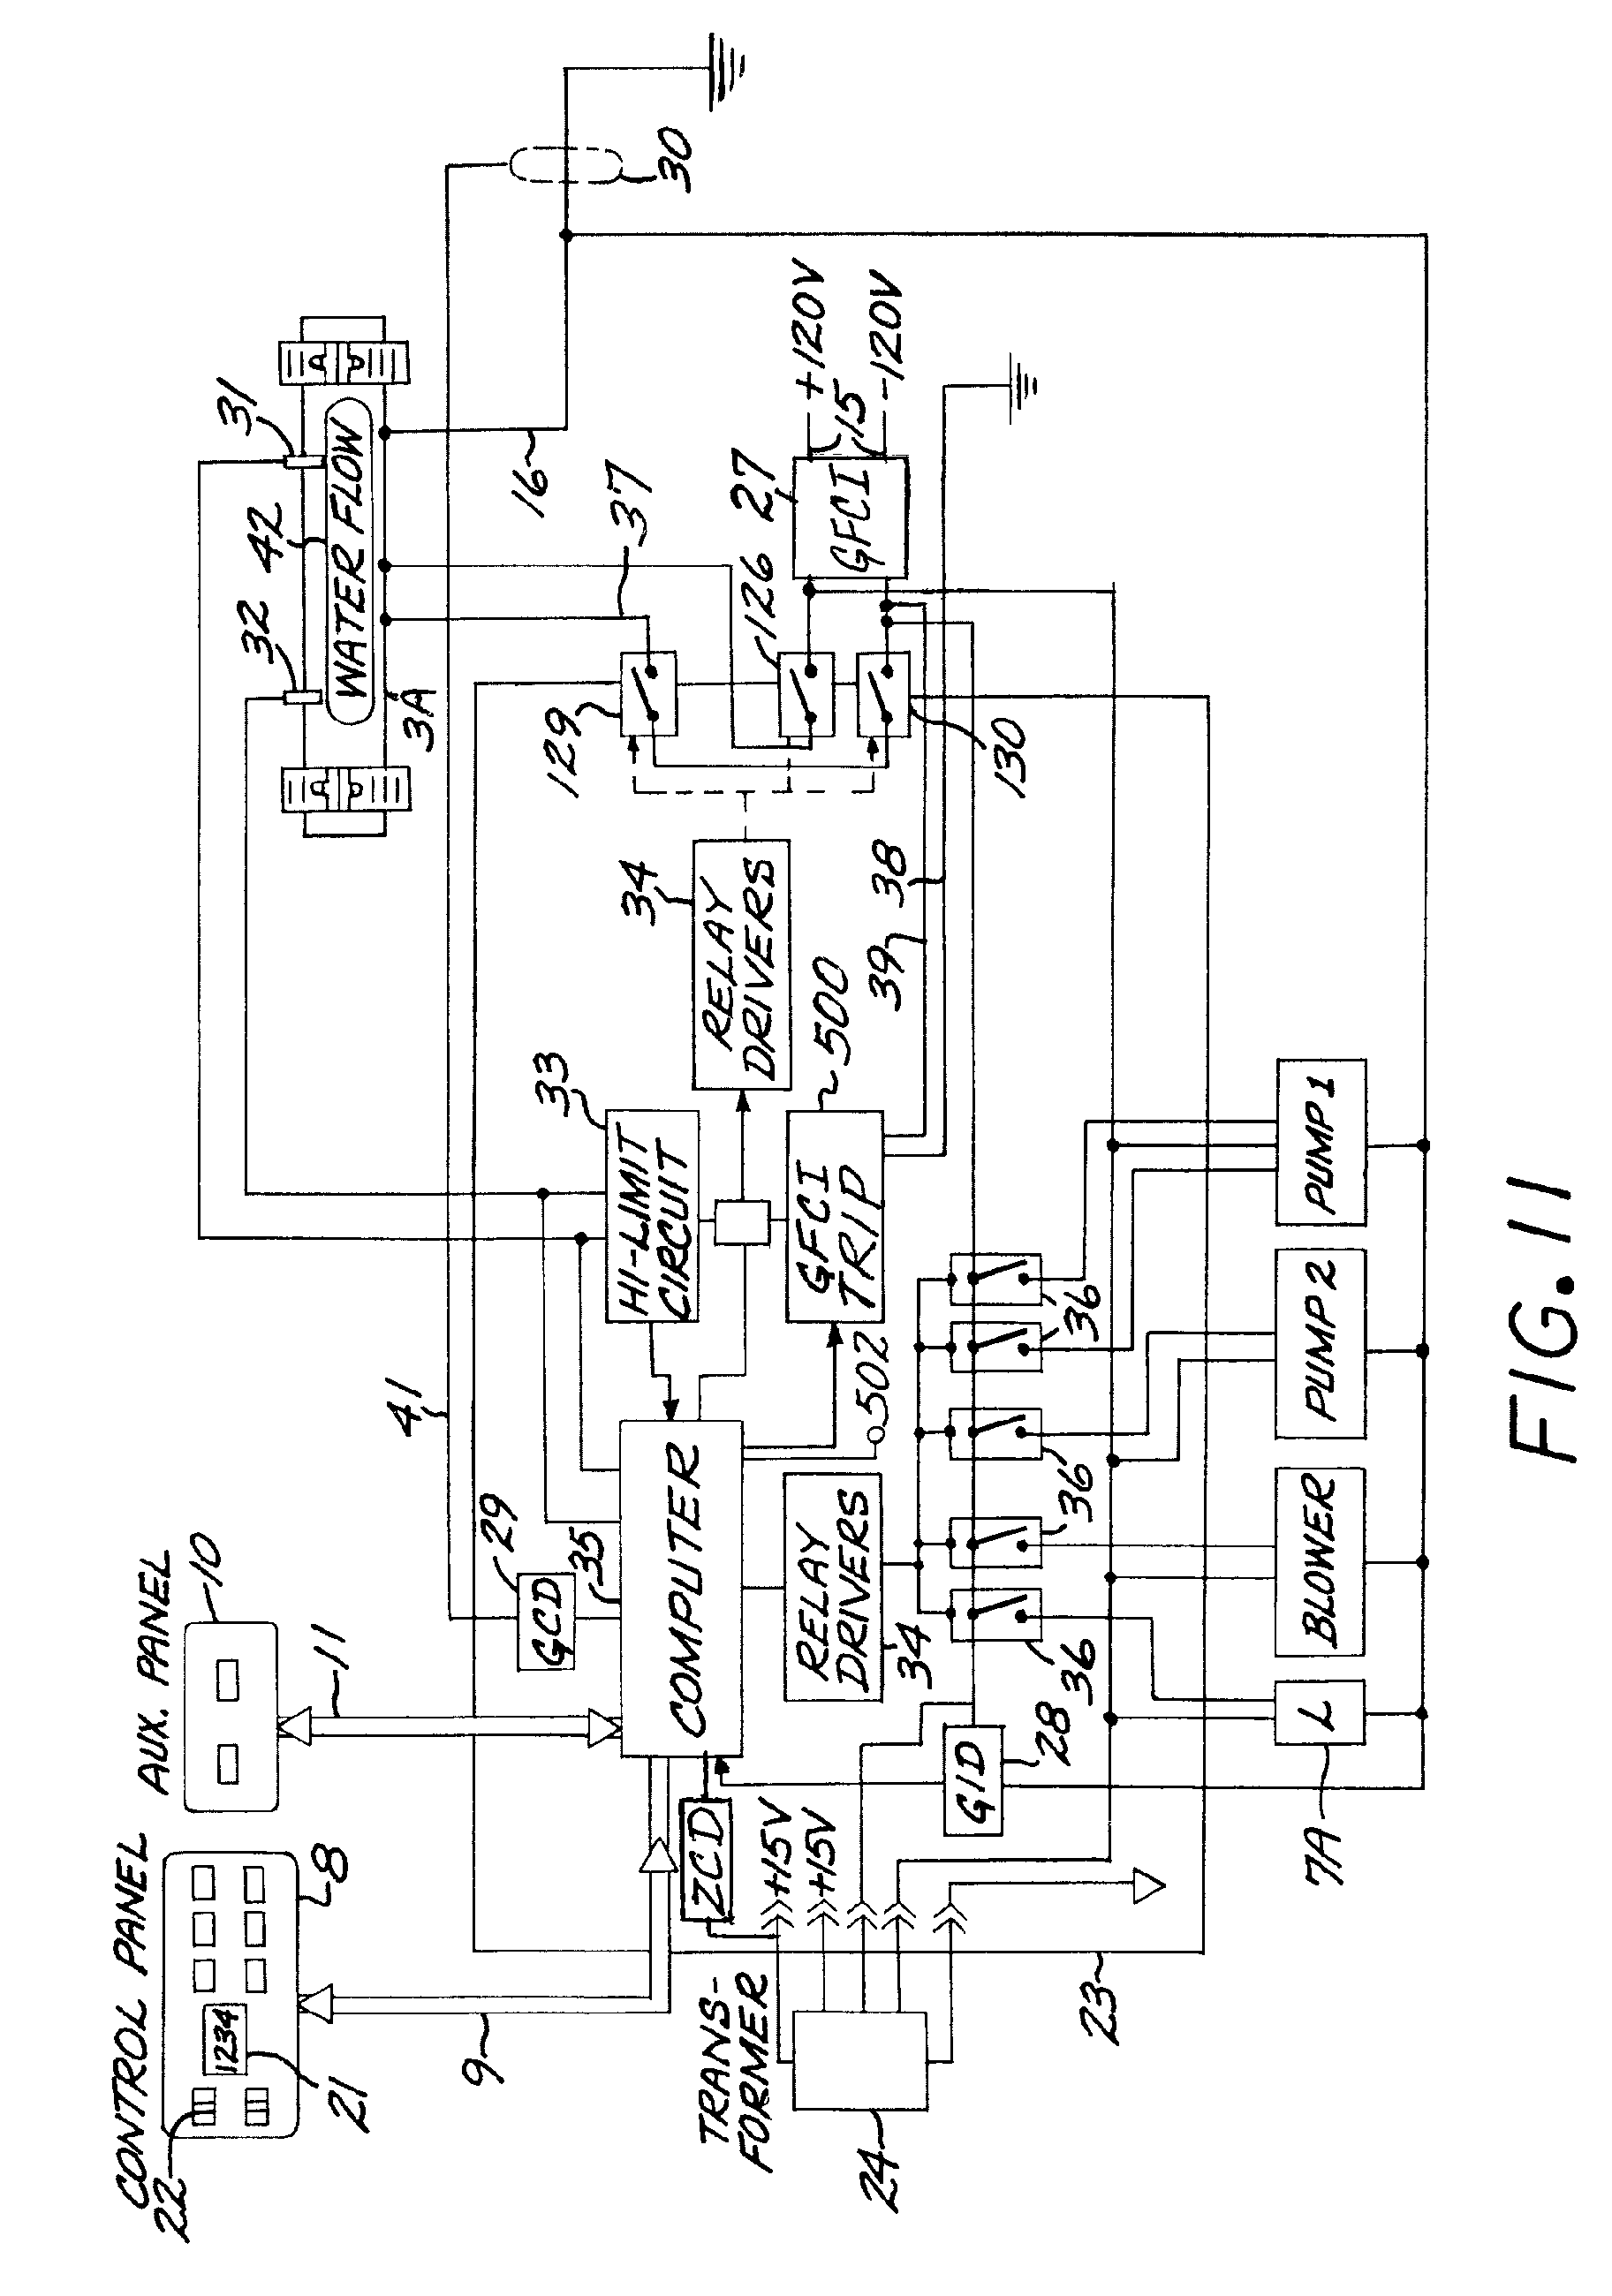 Patent Us7626789 Shutoff System For Pool Or Spa Google Patents At Light Fixture Box Proceeds To First 3way Switch A 4 Drawing